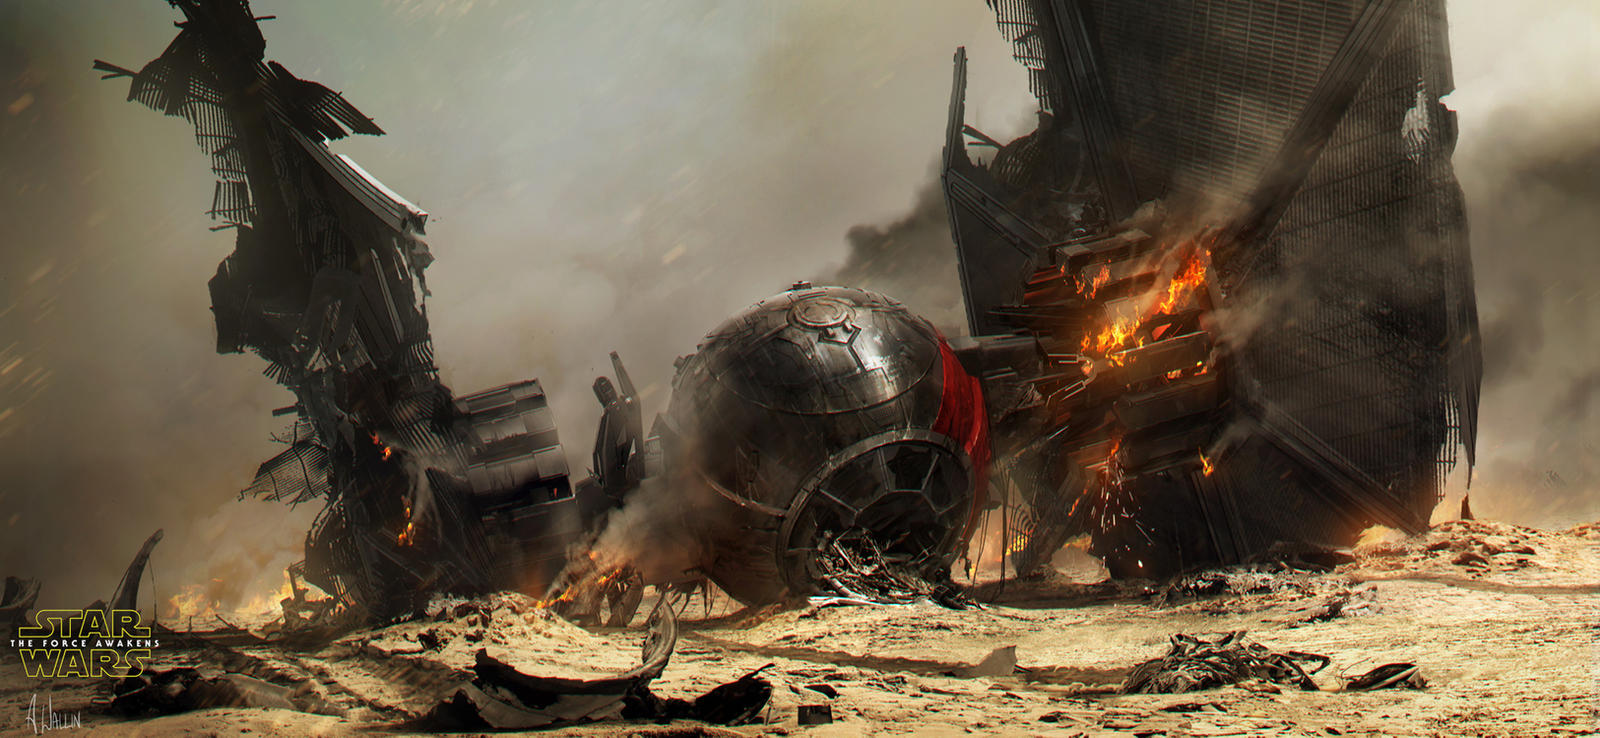 star wars the force awakens - 1316×607